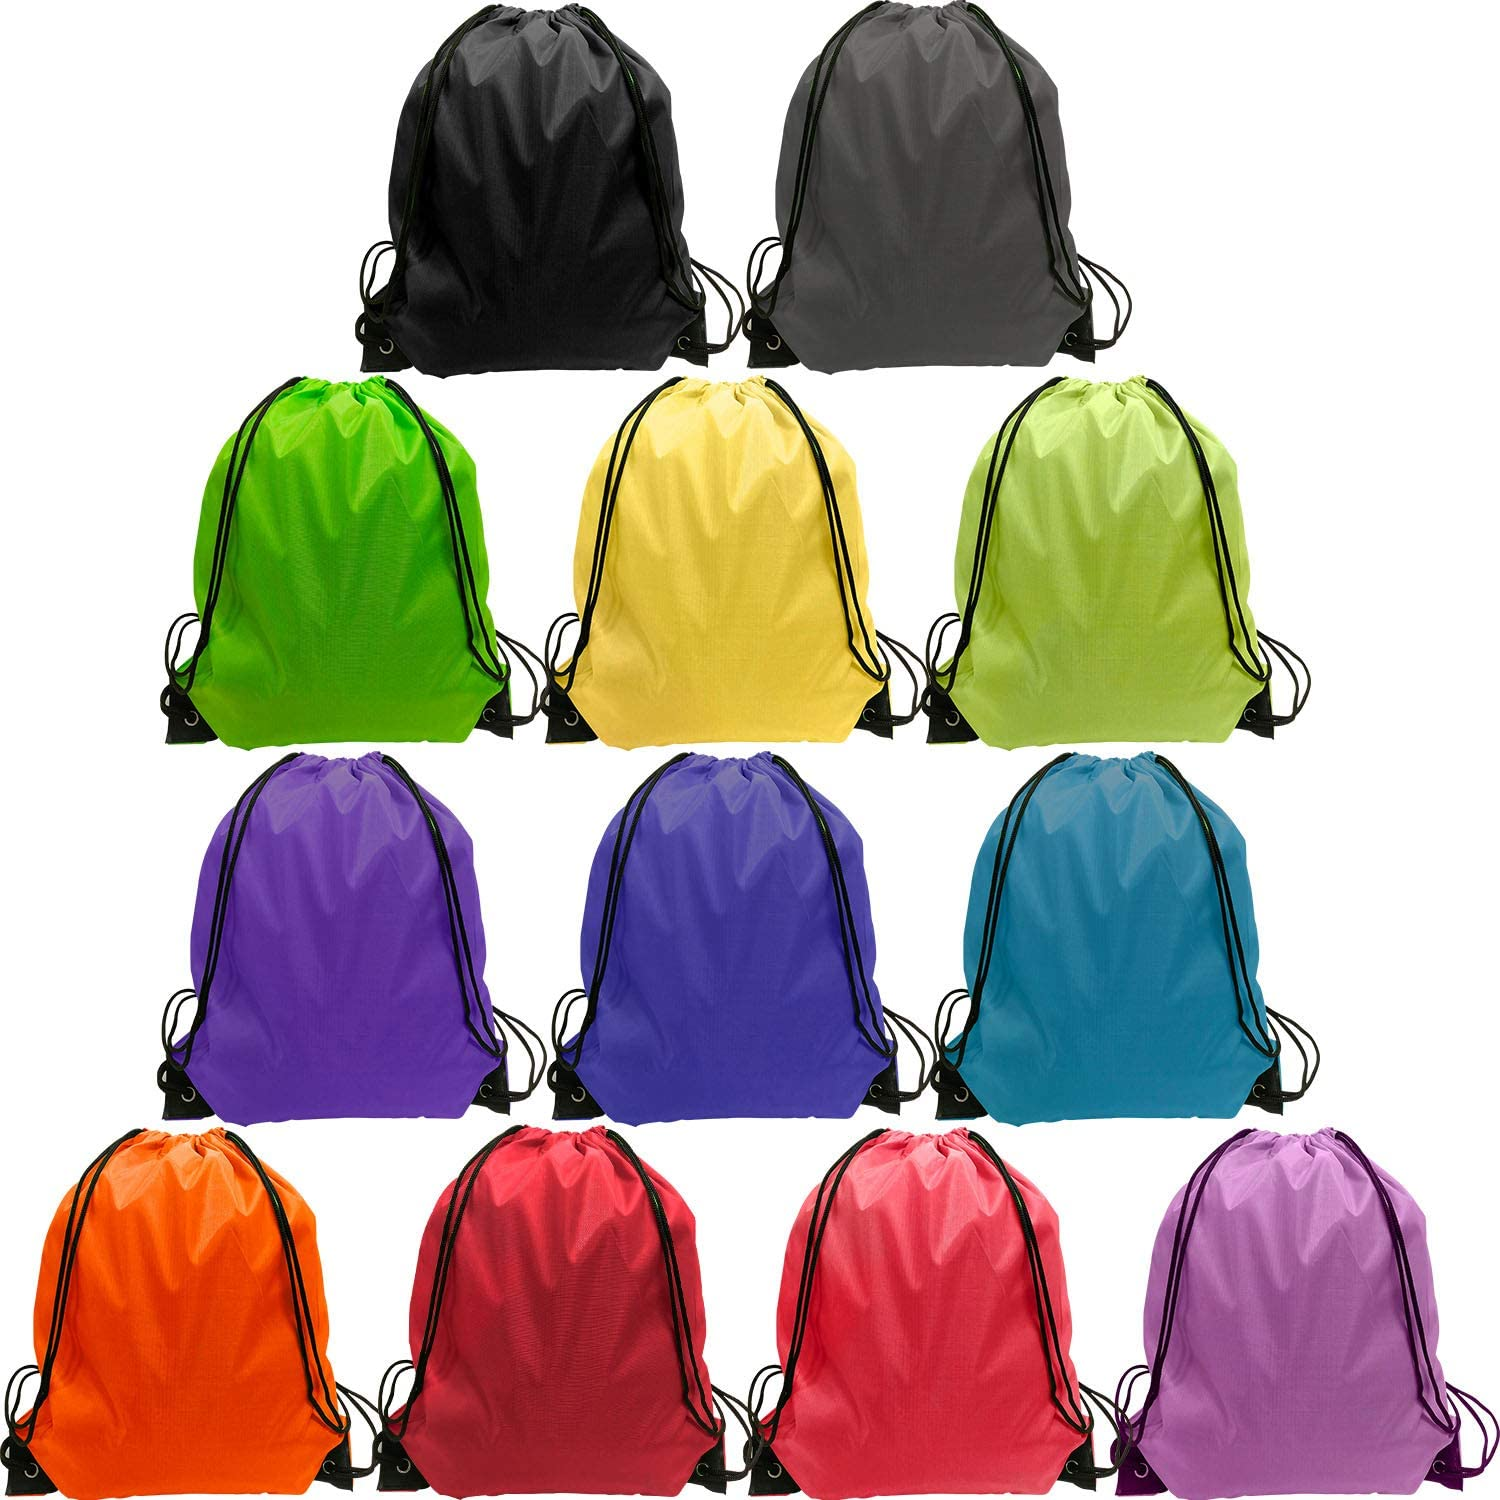 Drawstring Backpack Bags Bulk 24 Pieces Nylon Drawstring Bag Sring Backpack Bags Sport Gym Sack Drawstring Backpack Bag 12 Color Drawstring Backpacks